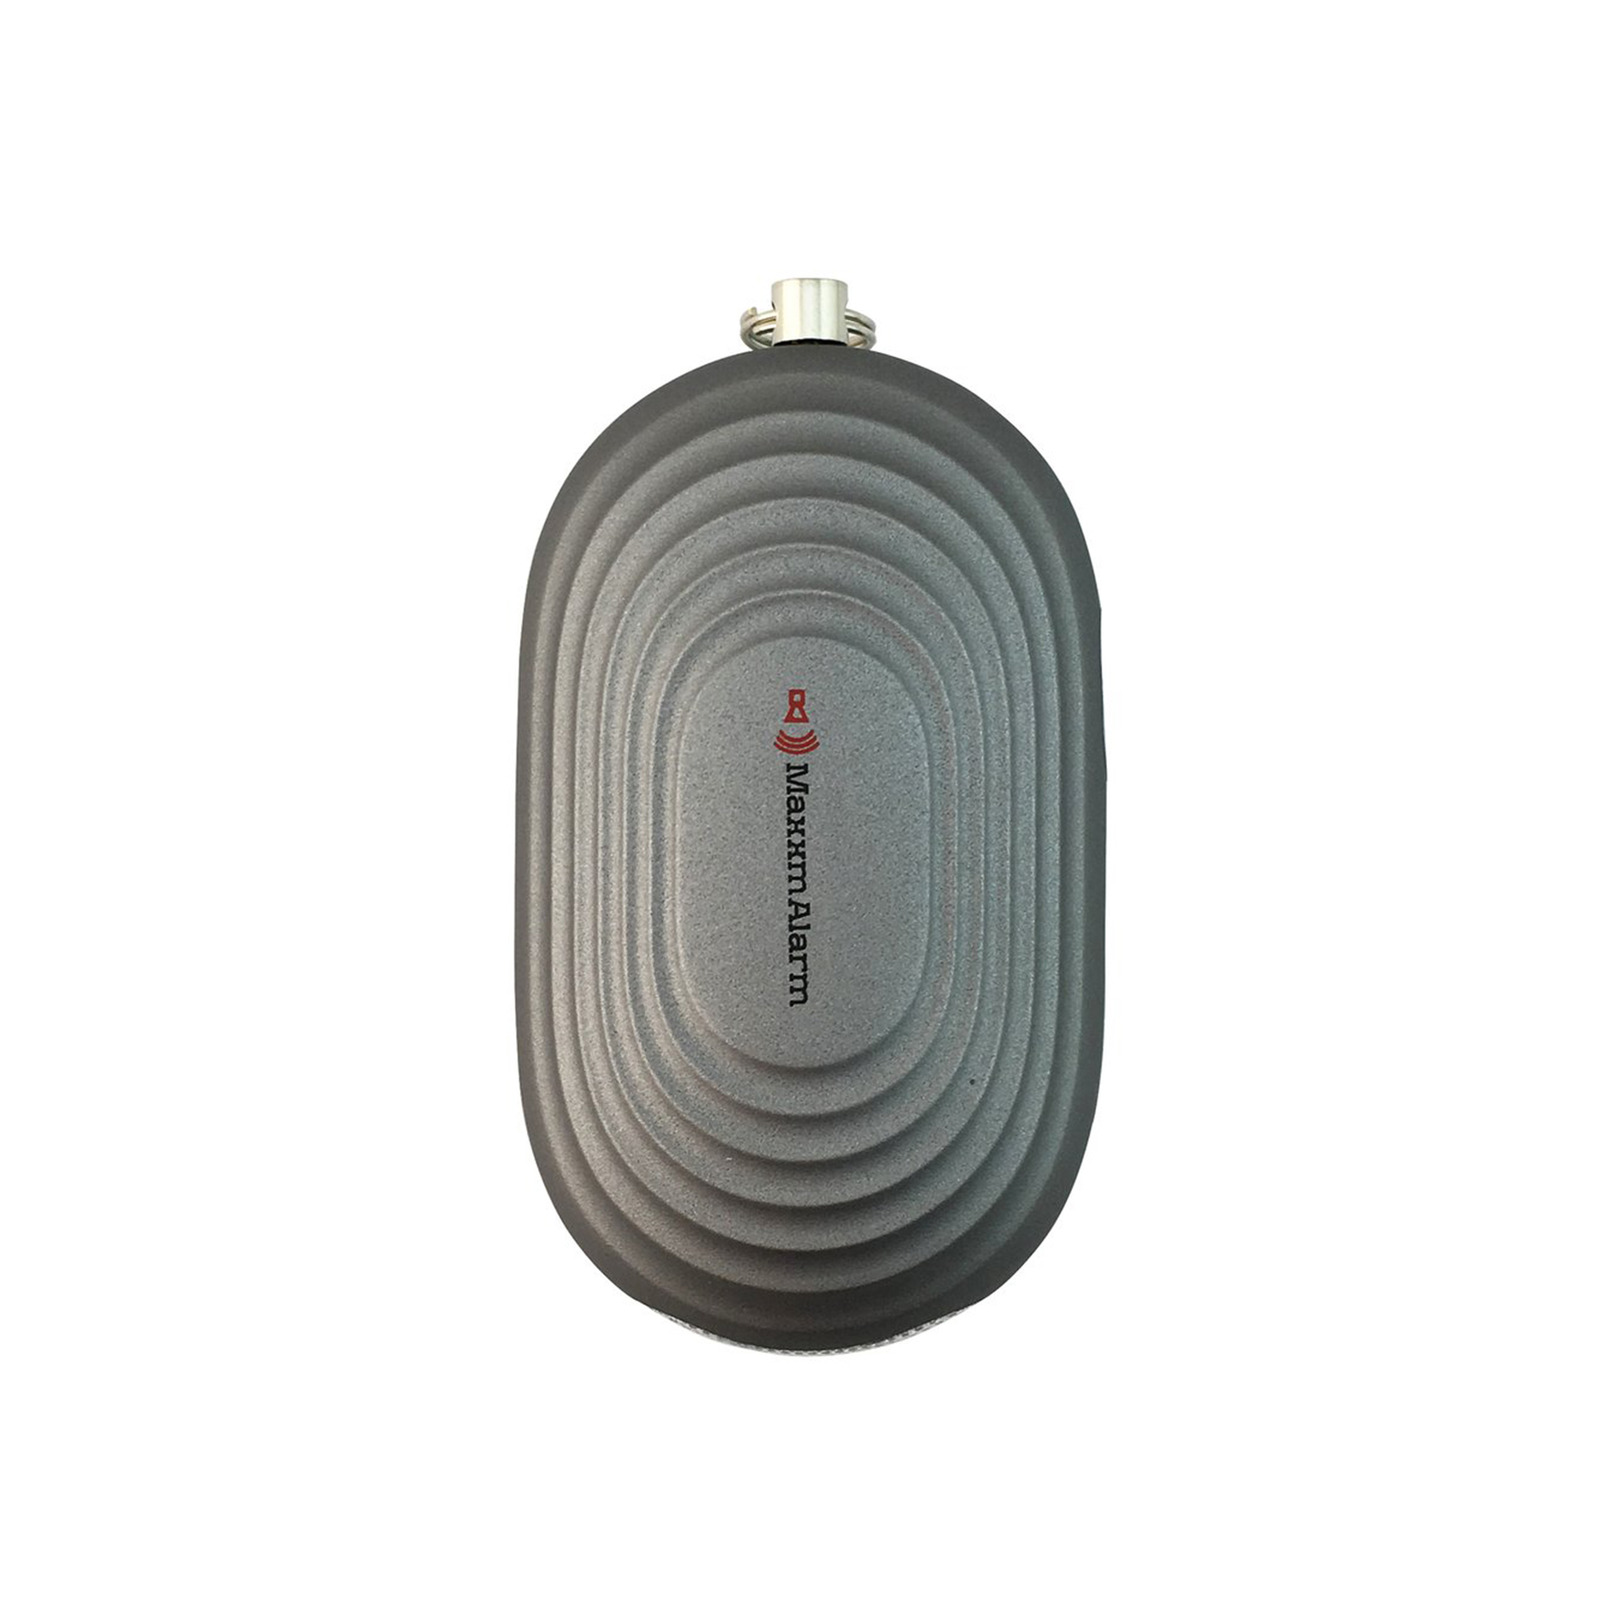 iMaxAlarm Portable Personal Alarm With Light (Matte Grey)